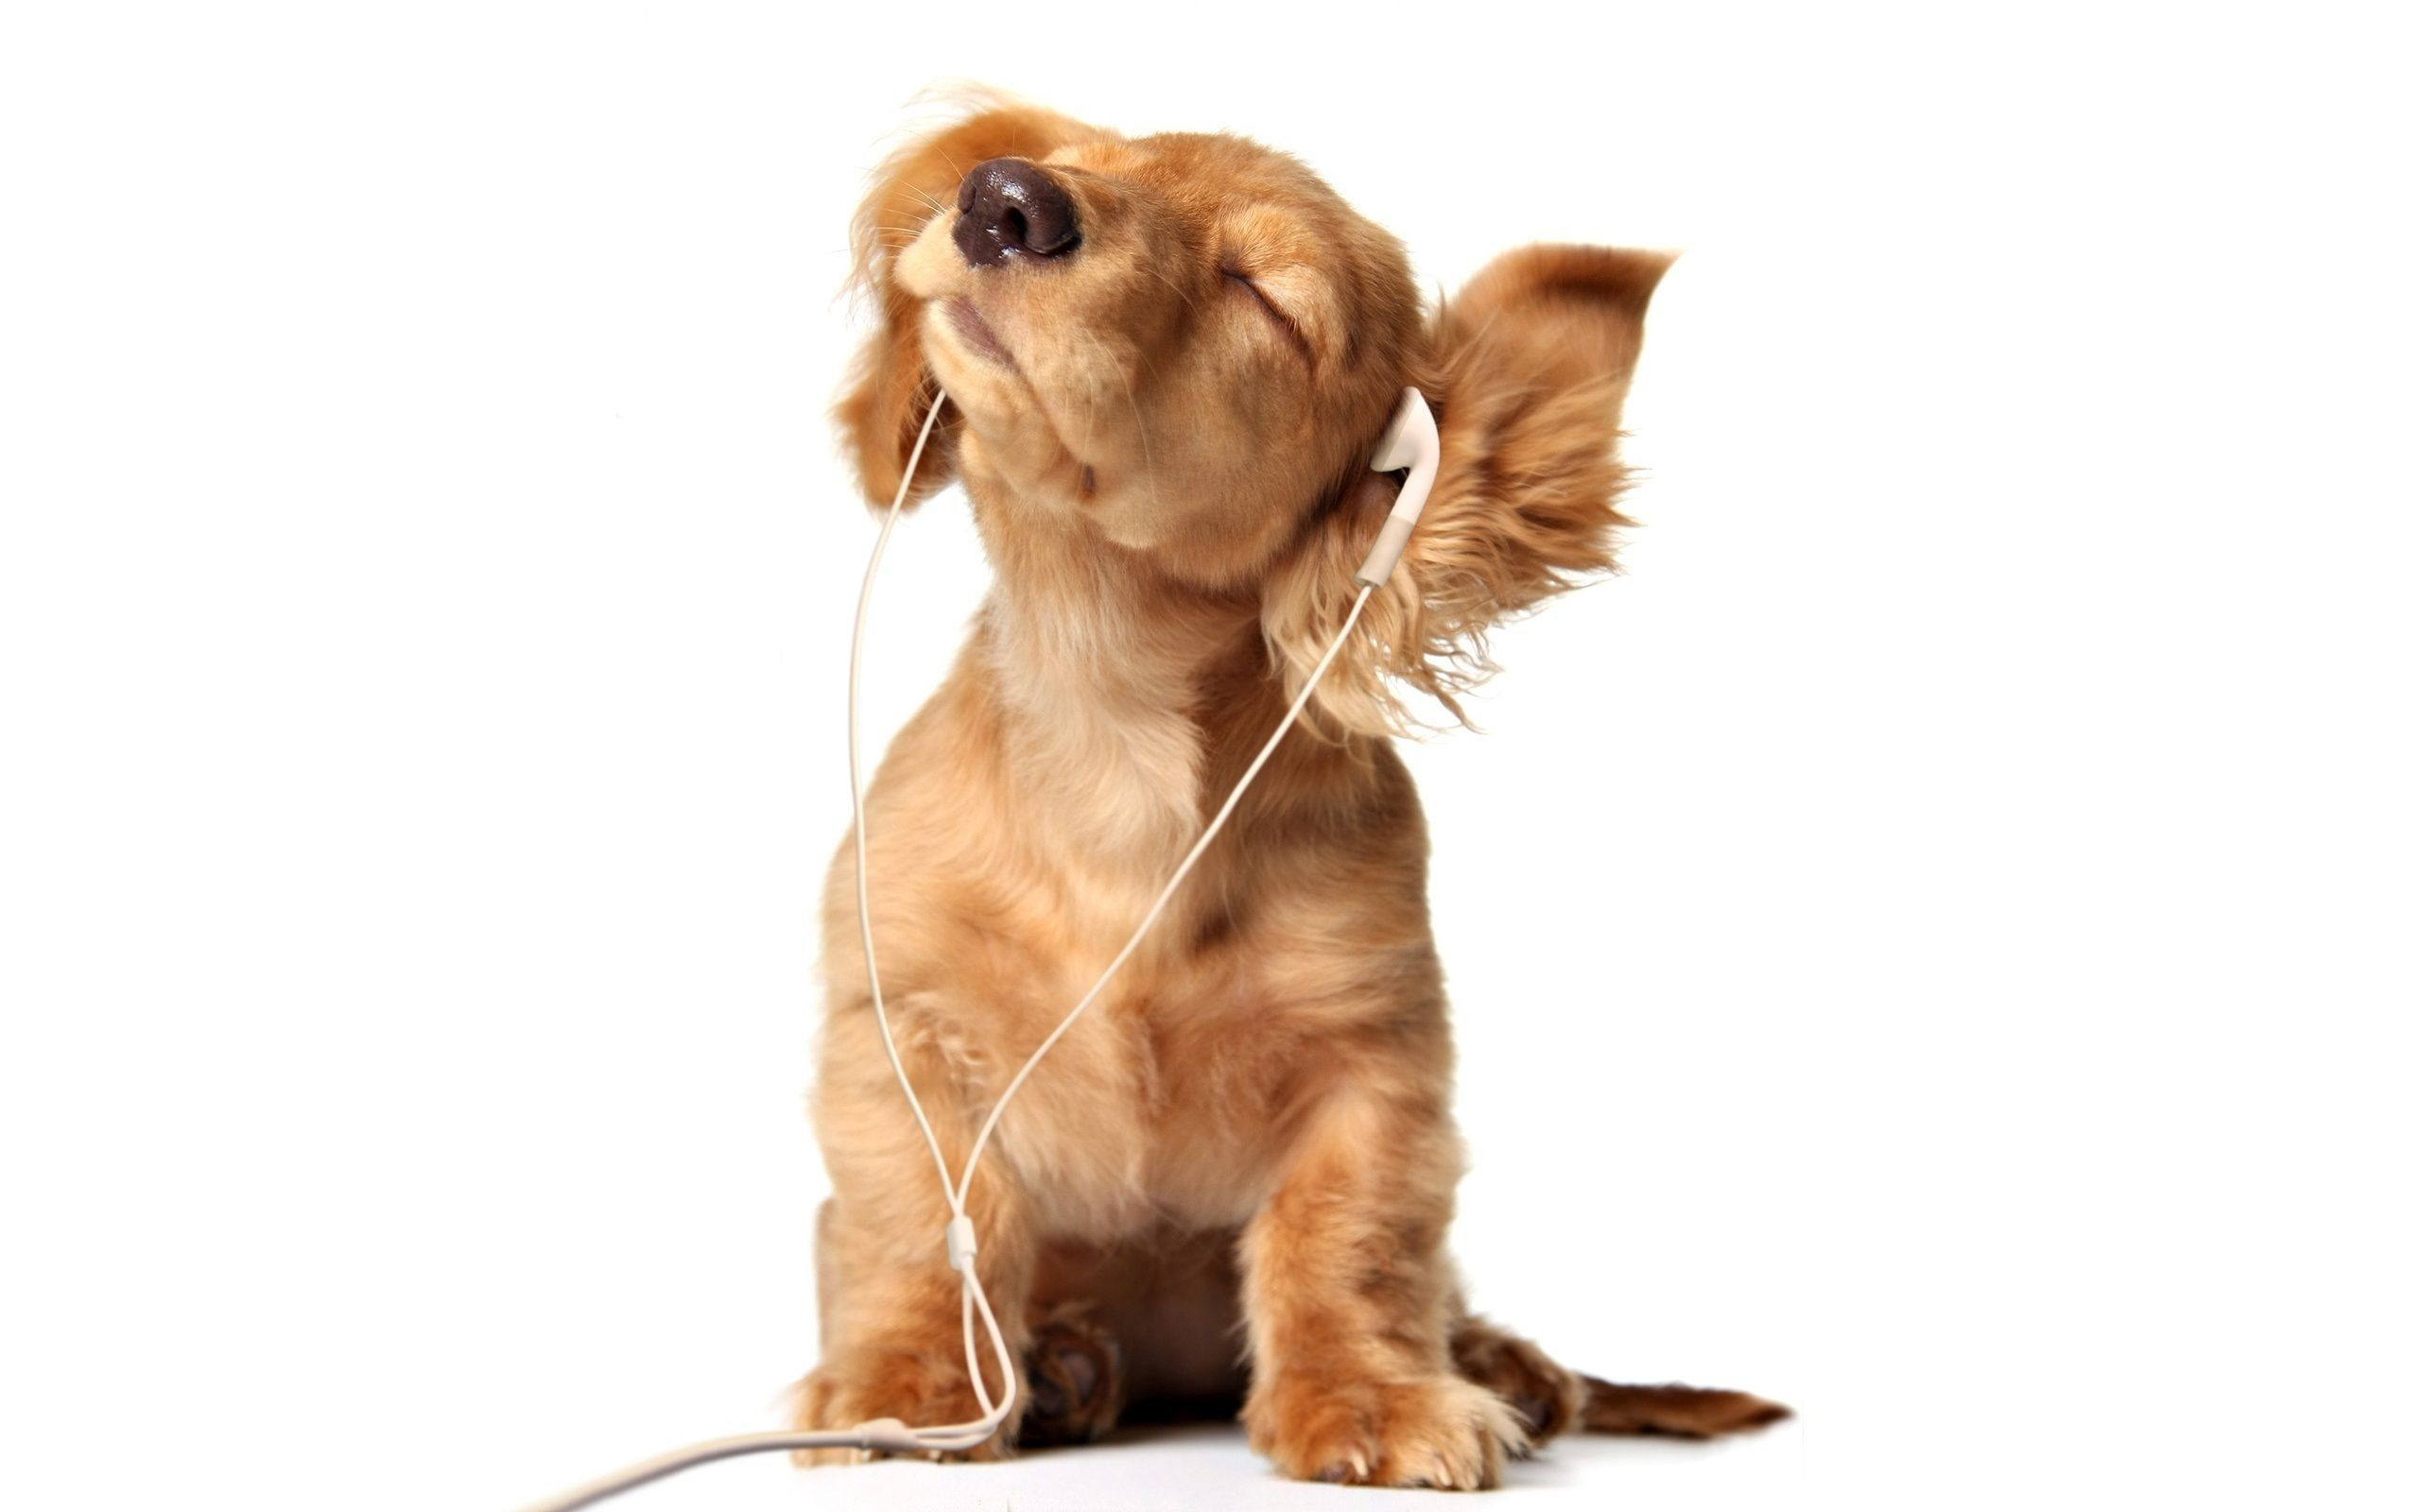 Sweet Puppy Listening To Music With Headphones 1920x1080 Http